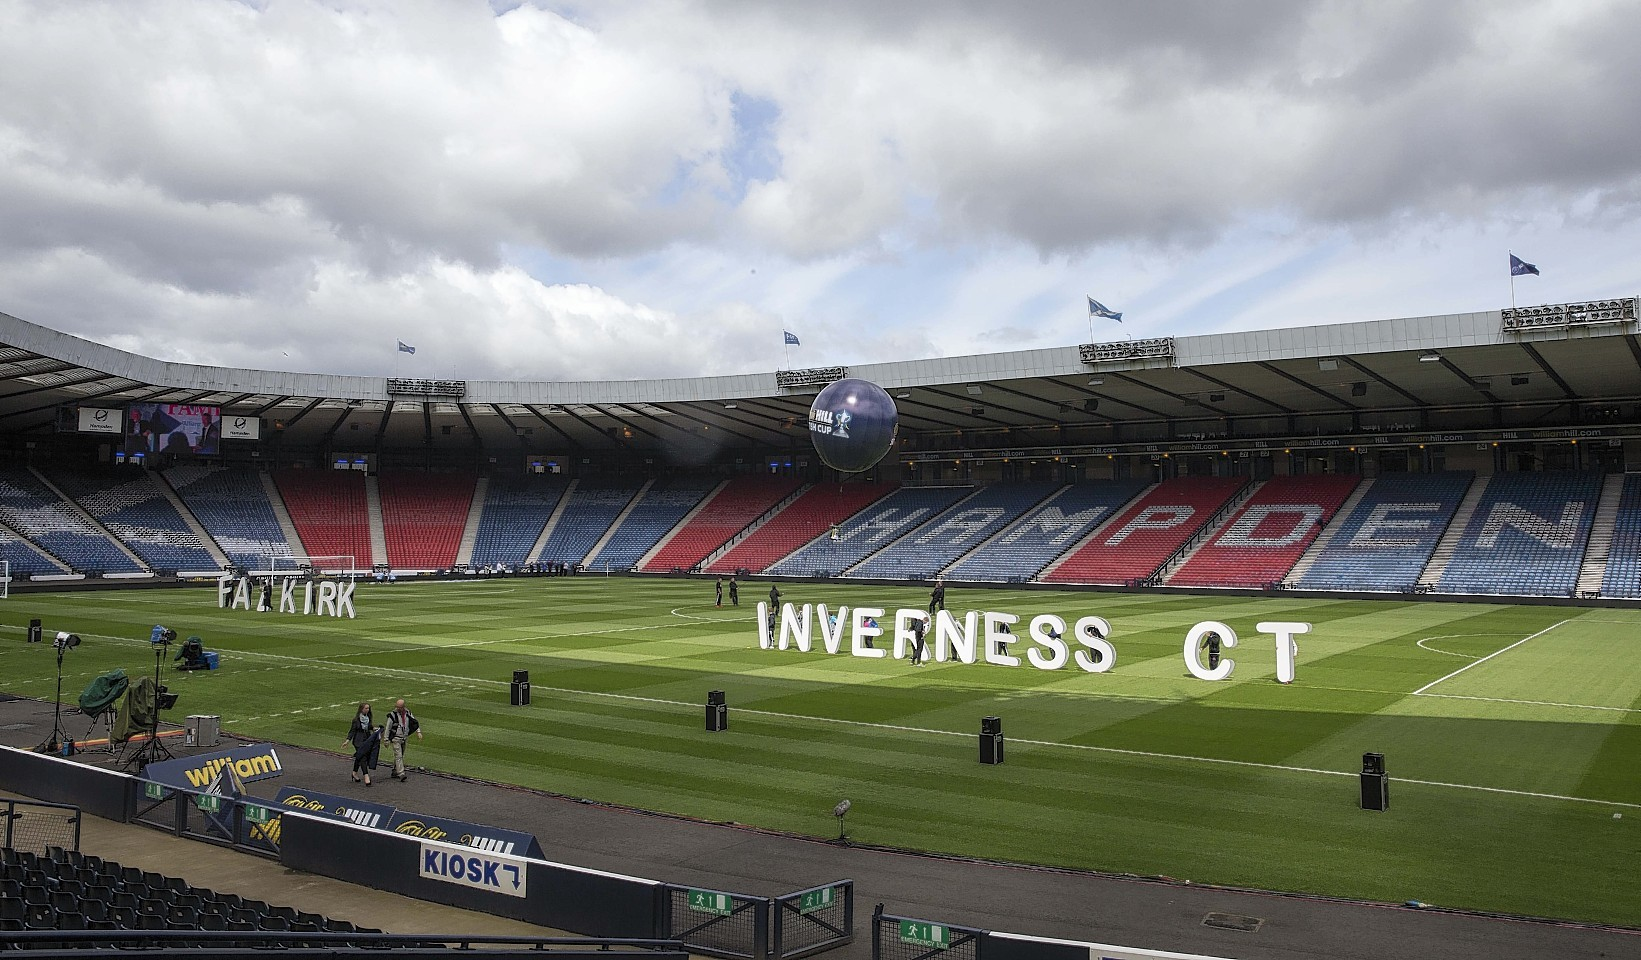 The quiet before the cup final Hampden storm...